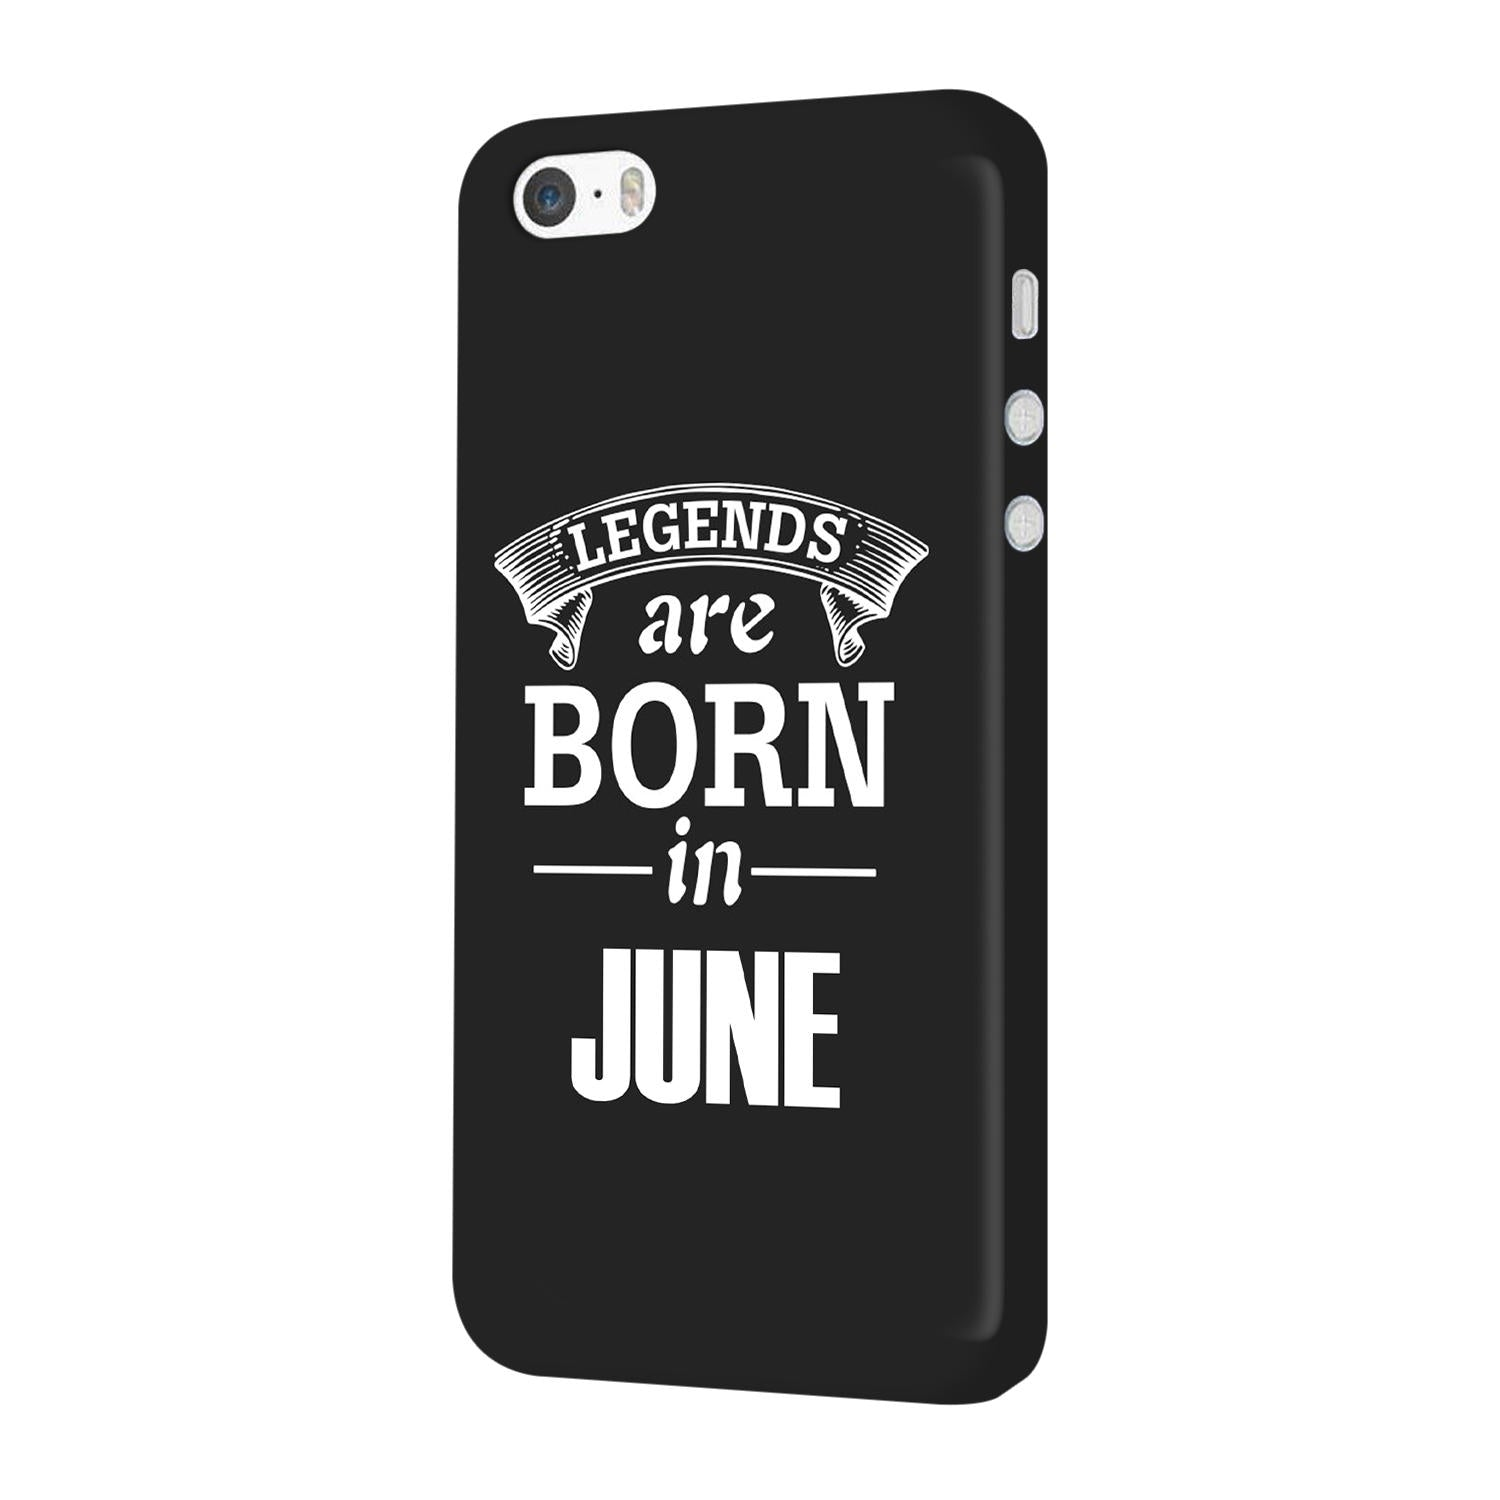 Legends June iPhone 5 Mobile Cover Case - MADANYU